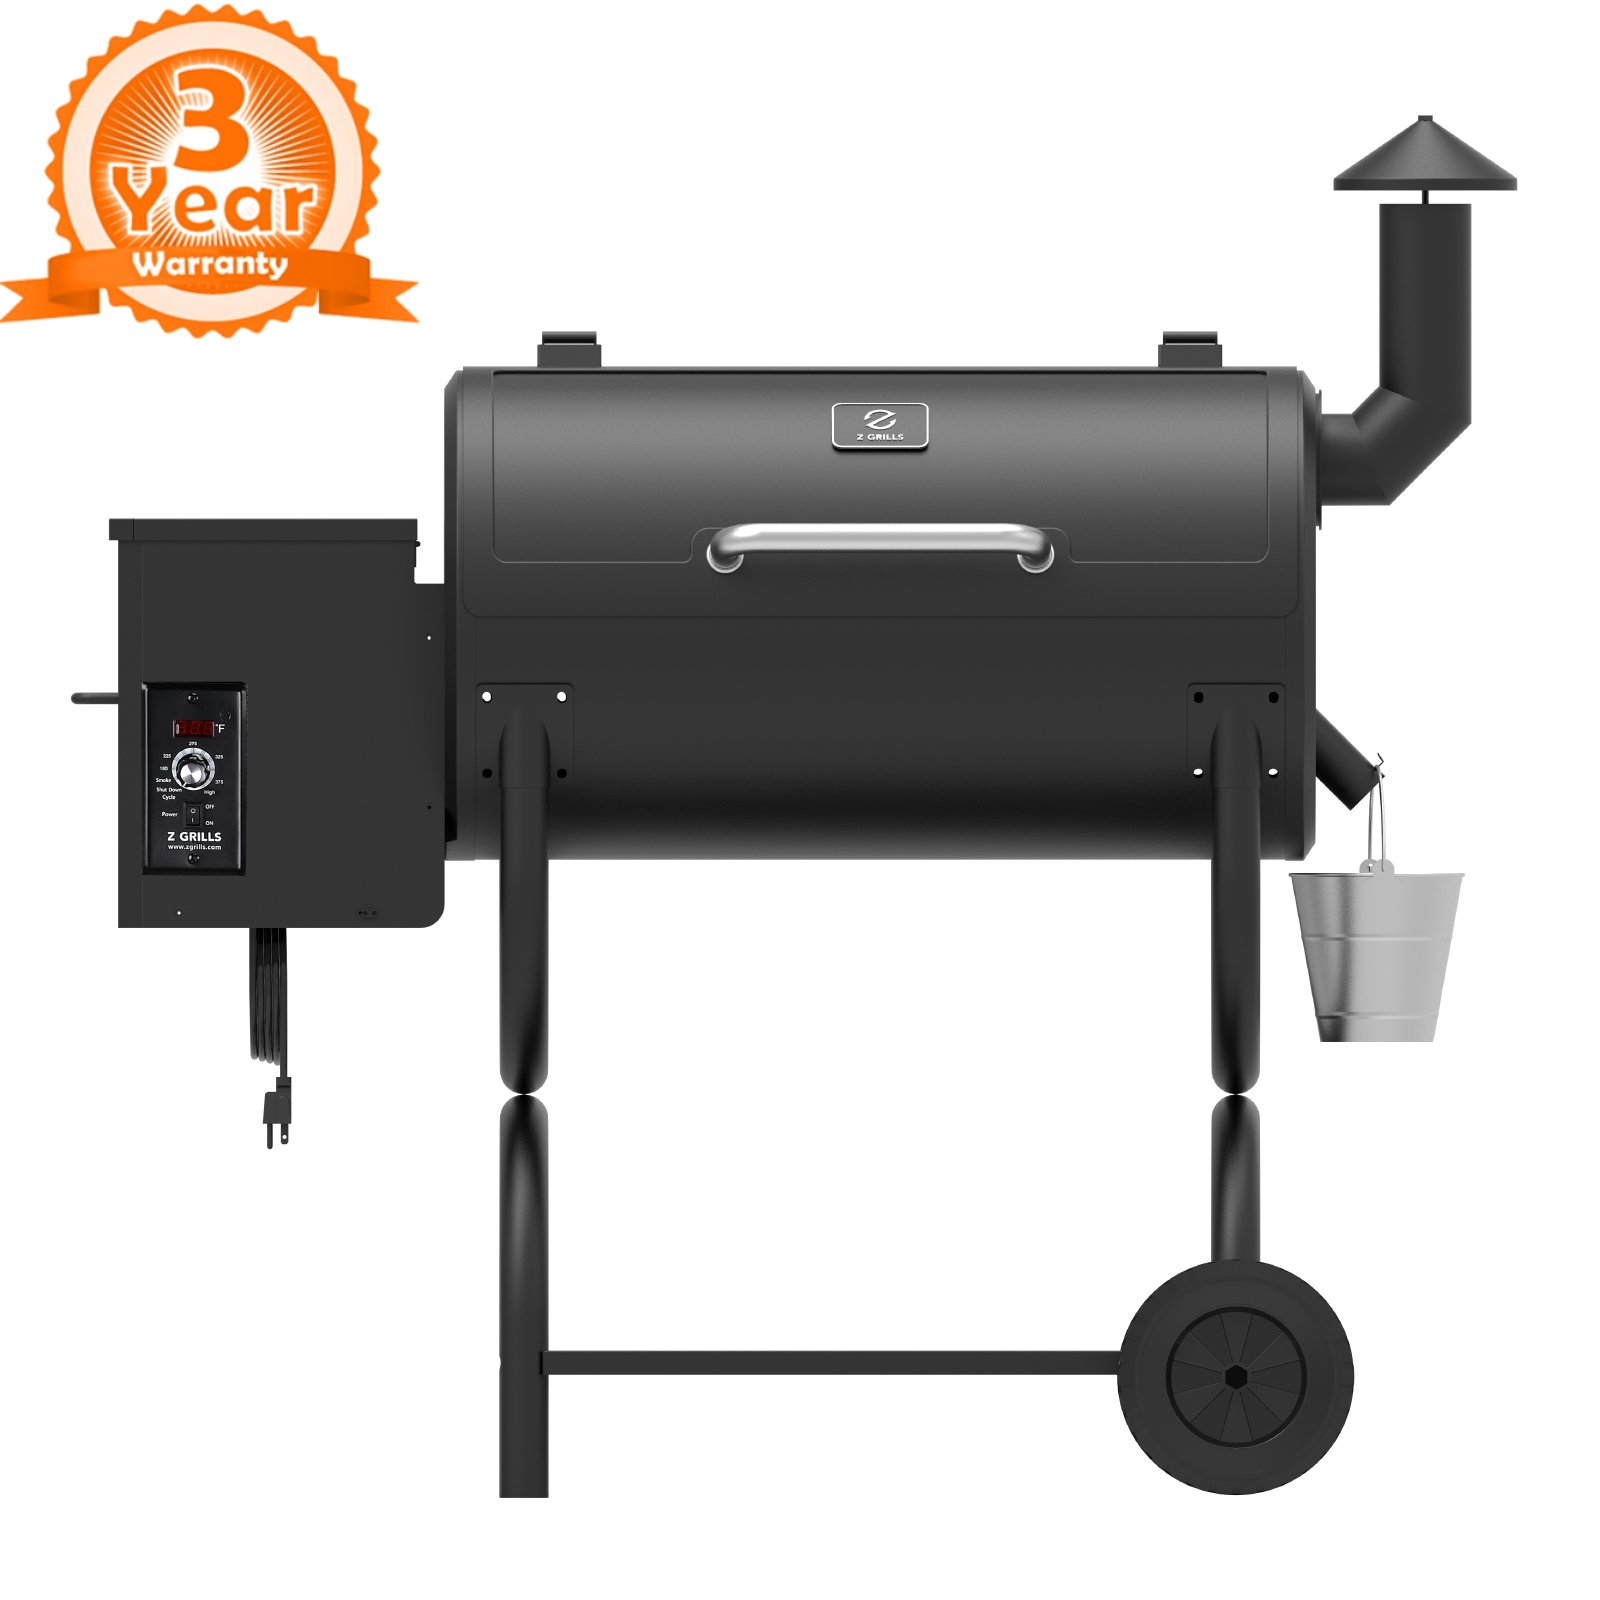 Z GRILLS ZPG-550B 2019 Upgrade Model Wood Pellet Grill & Smoker 6 in 1 BBQ Grill Auto Temperature Control, 550 sq Inch Deal, Black by Z GRILLS